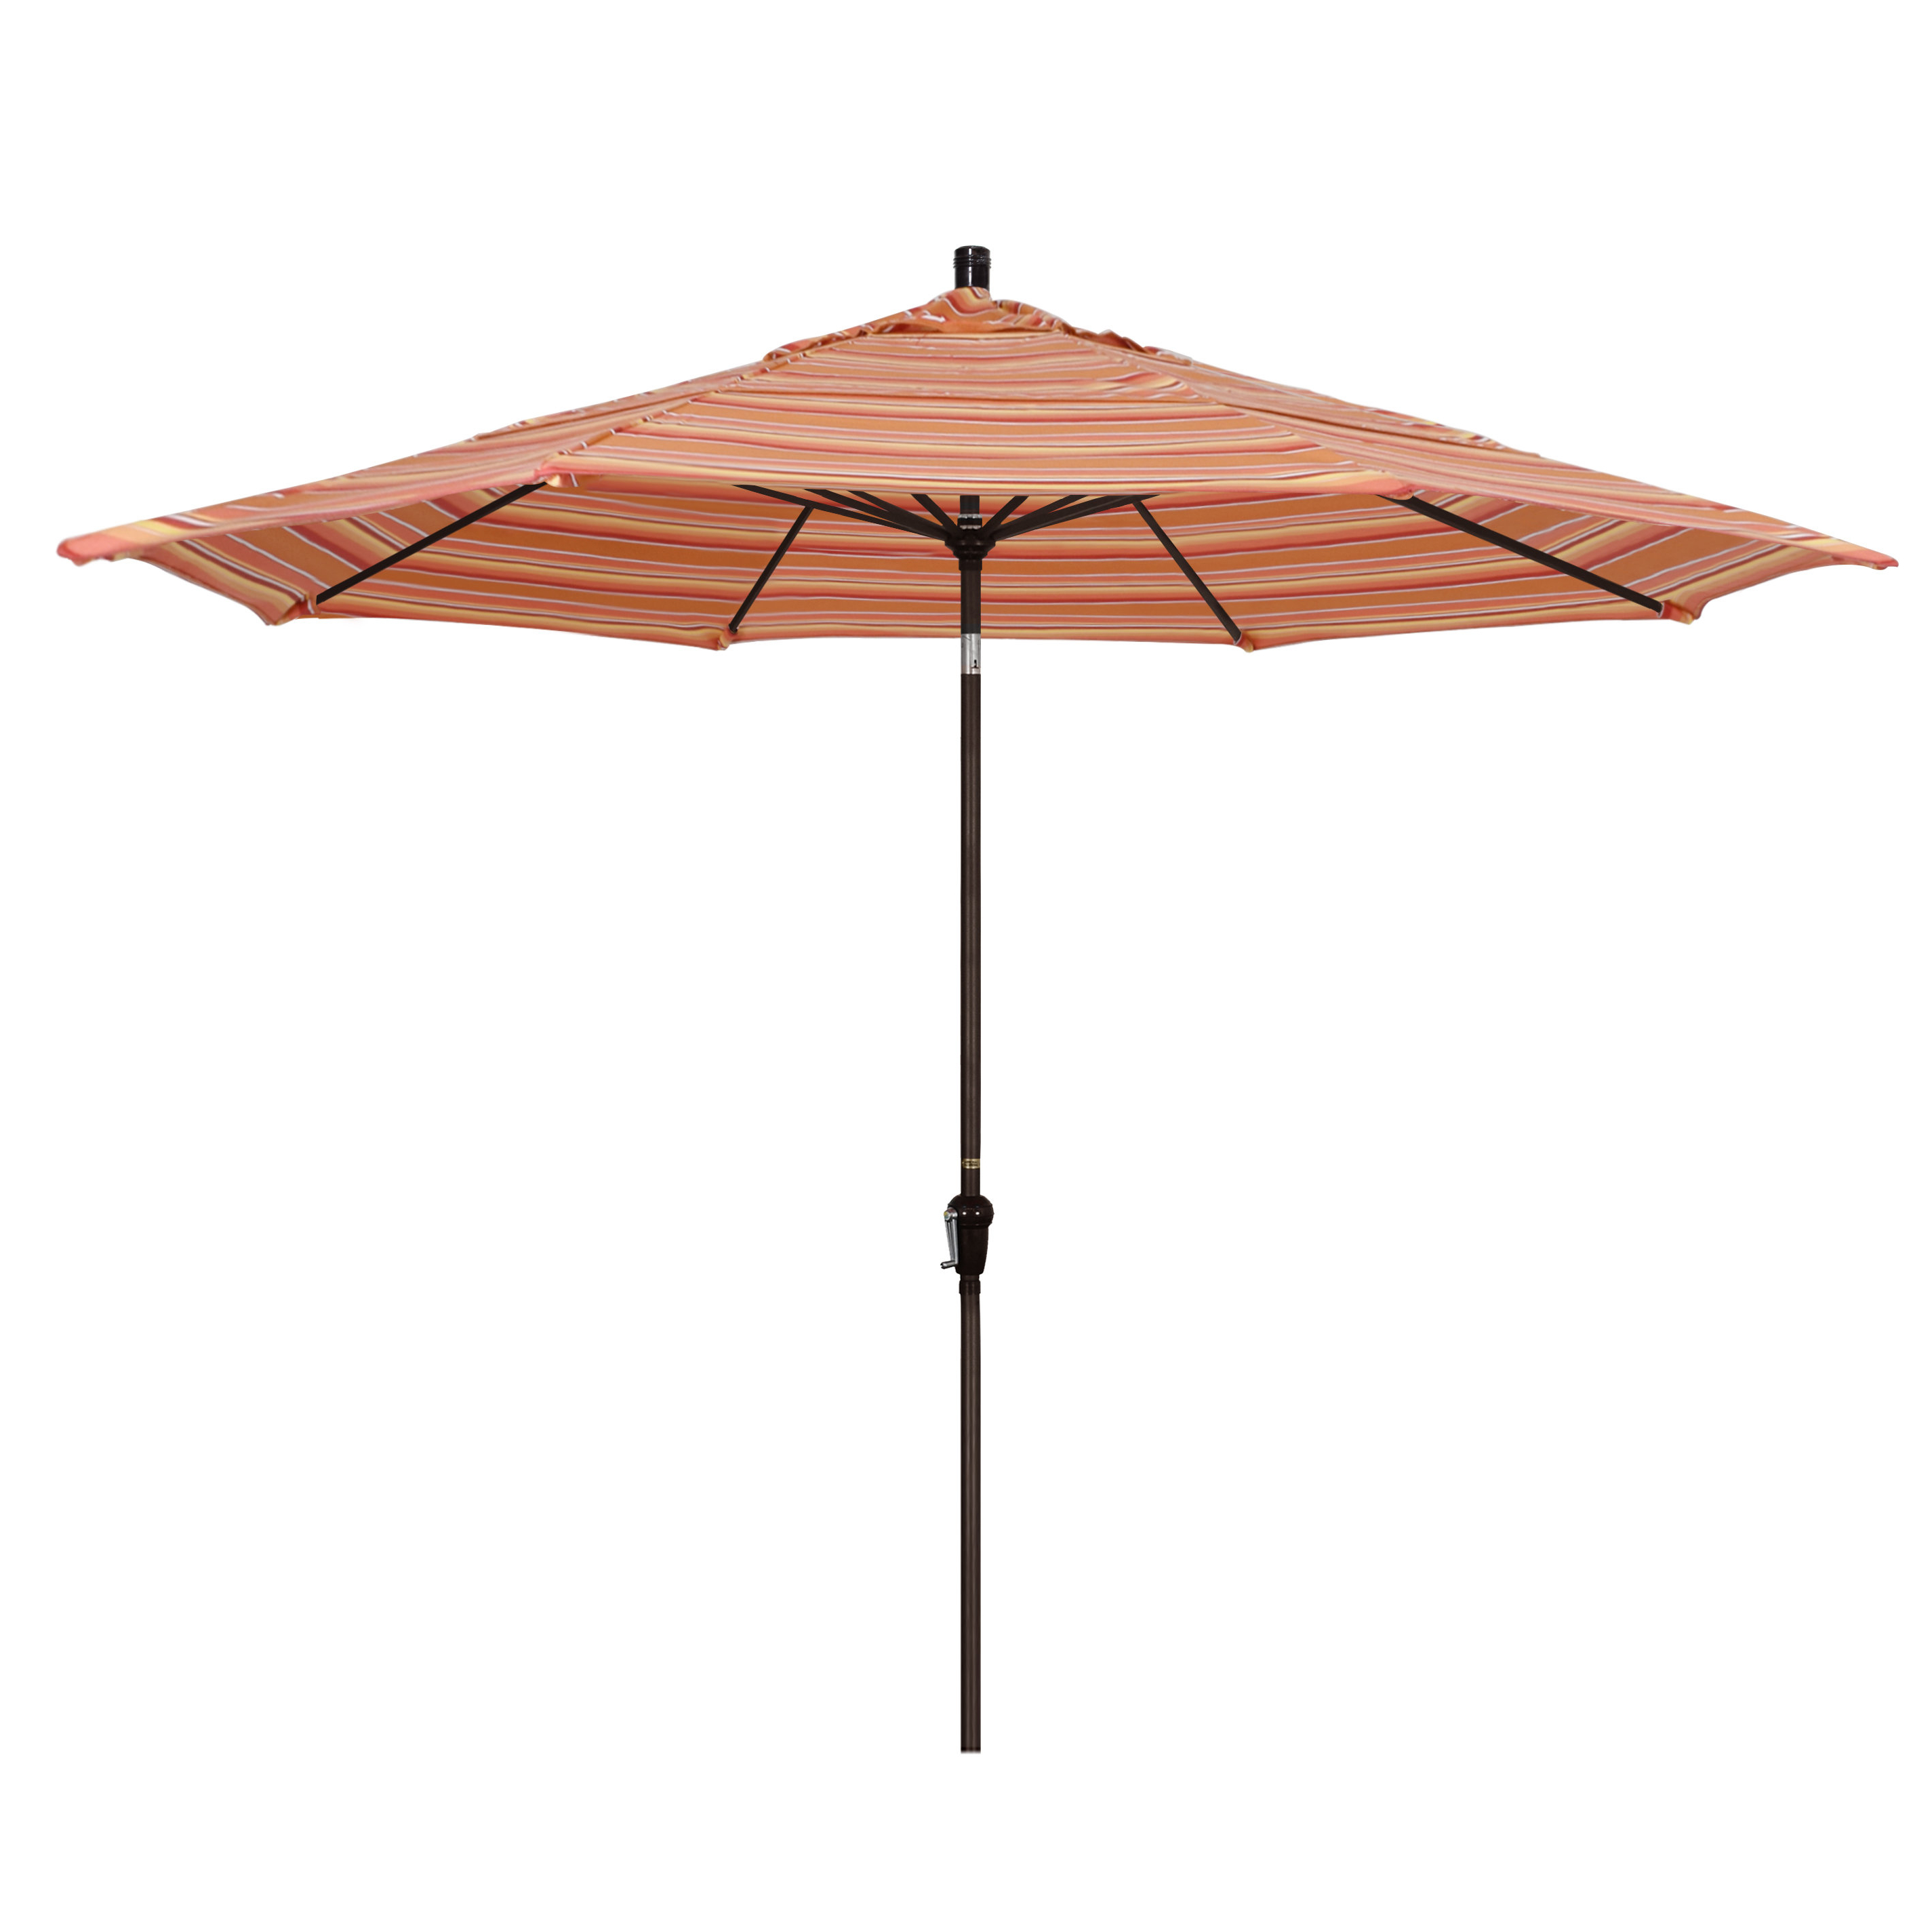 Mullaney 11' Market Sunbrella Umbrella Within Recent Featherste Market Umbrellas (View 6 of 20)